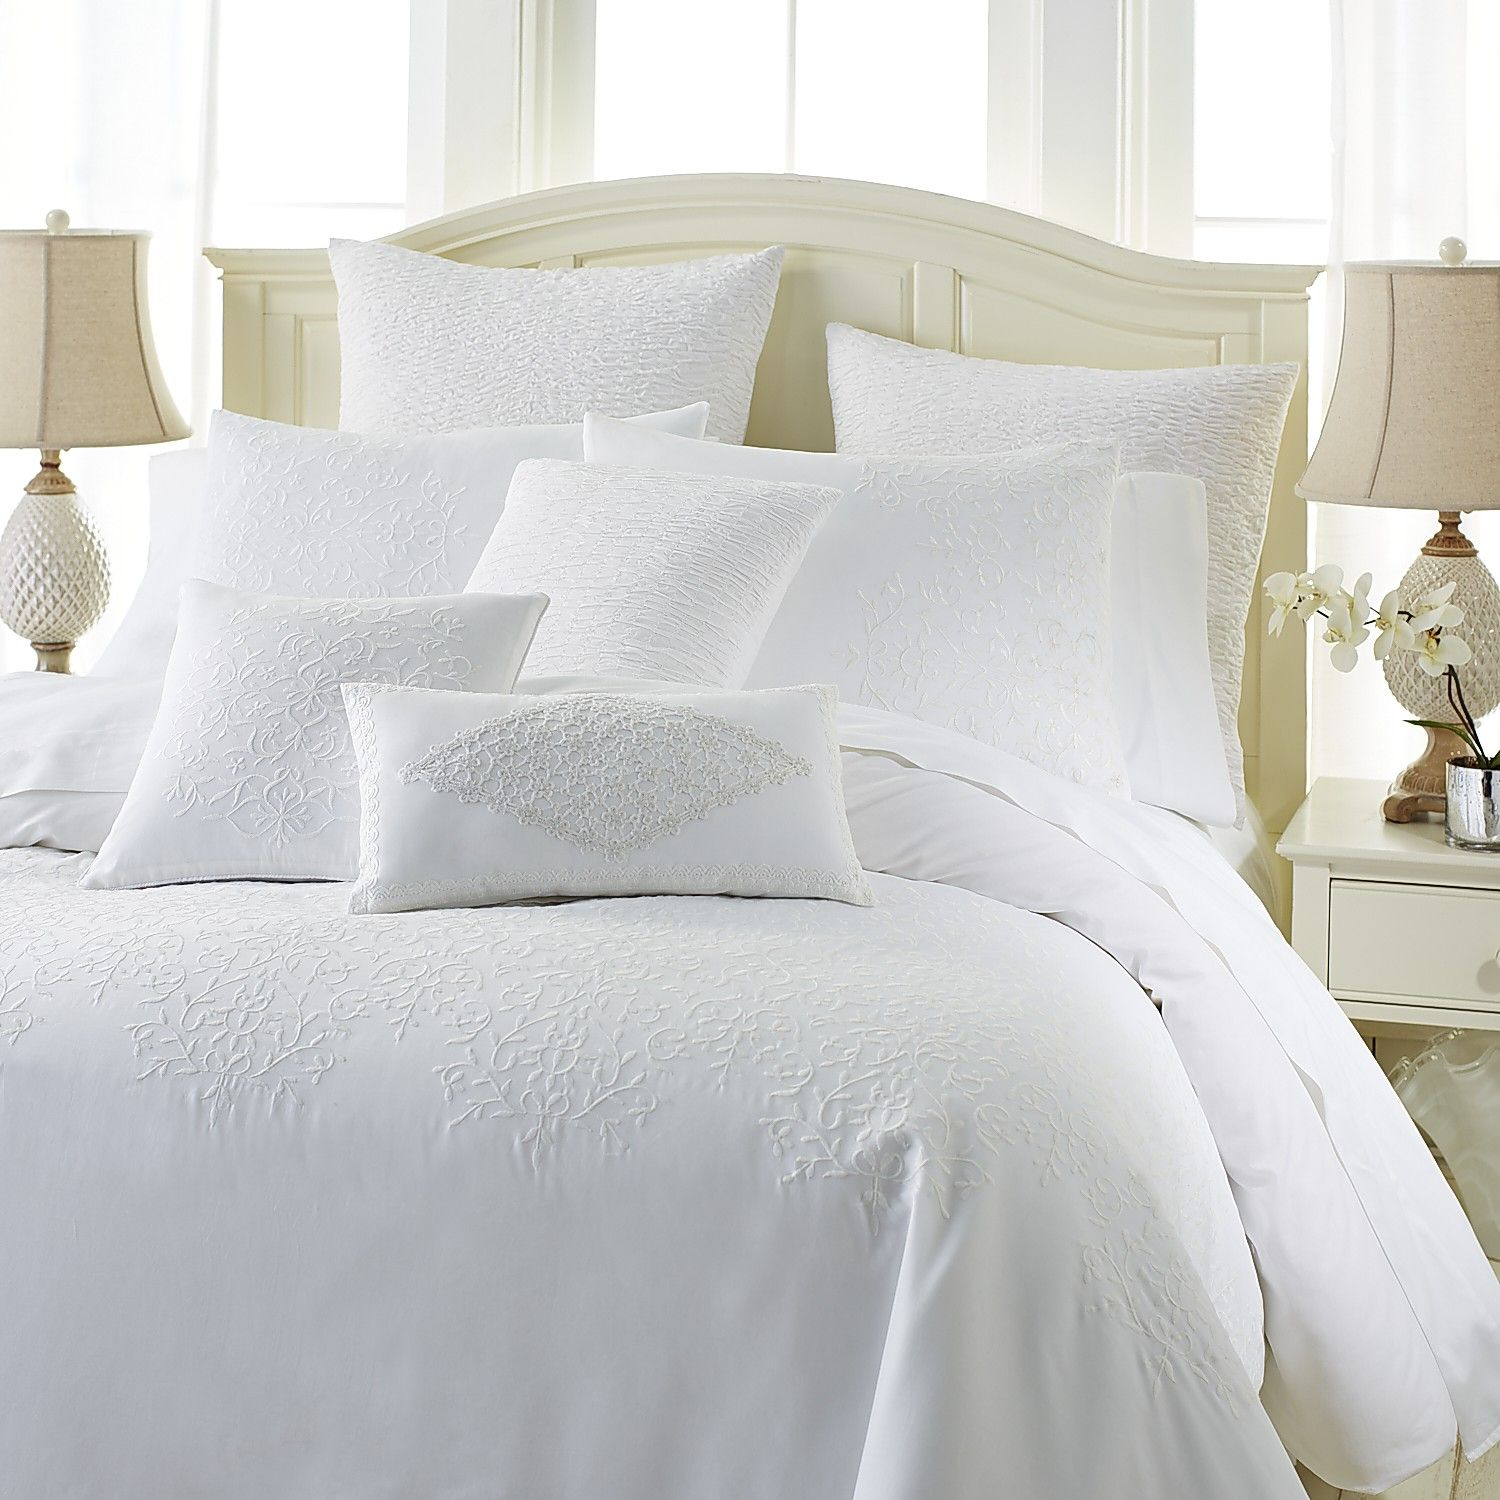 Lace Embroidered Duvet Cover Amp Sham White Cotton